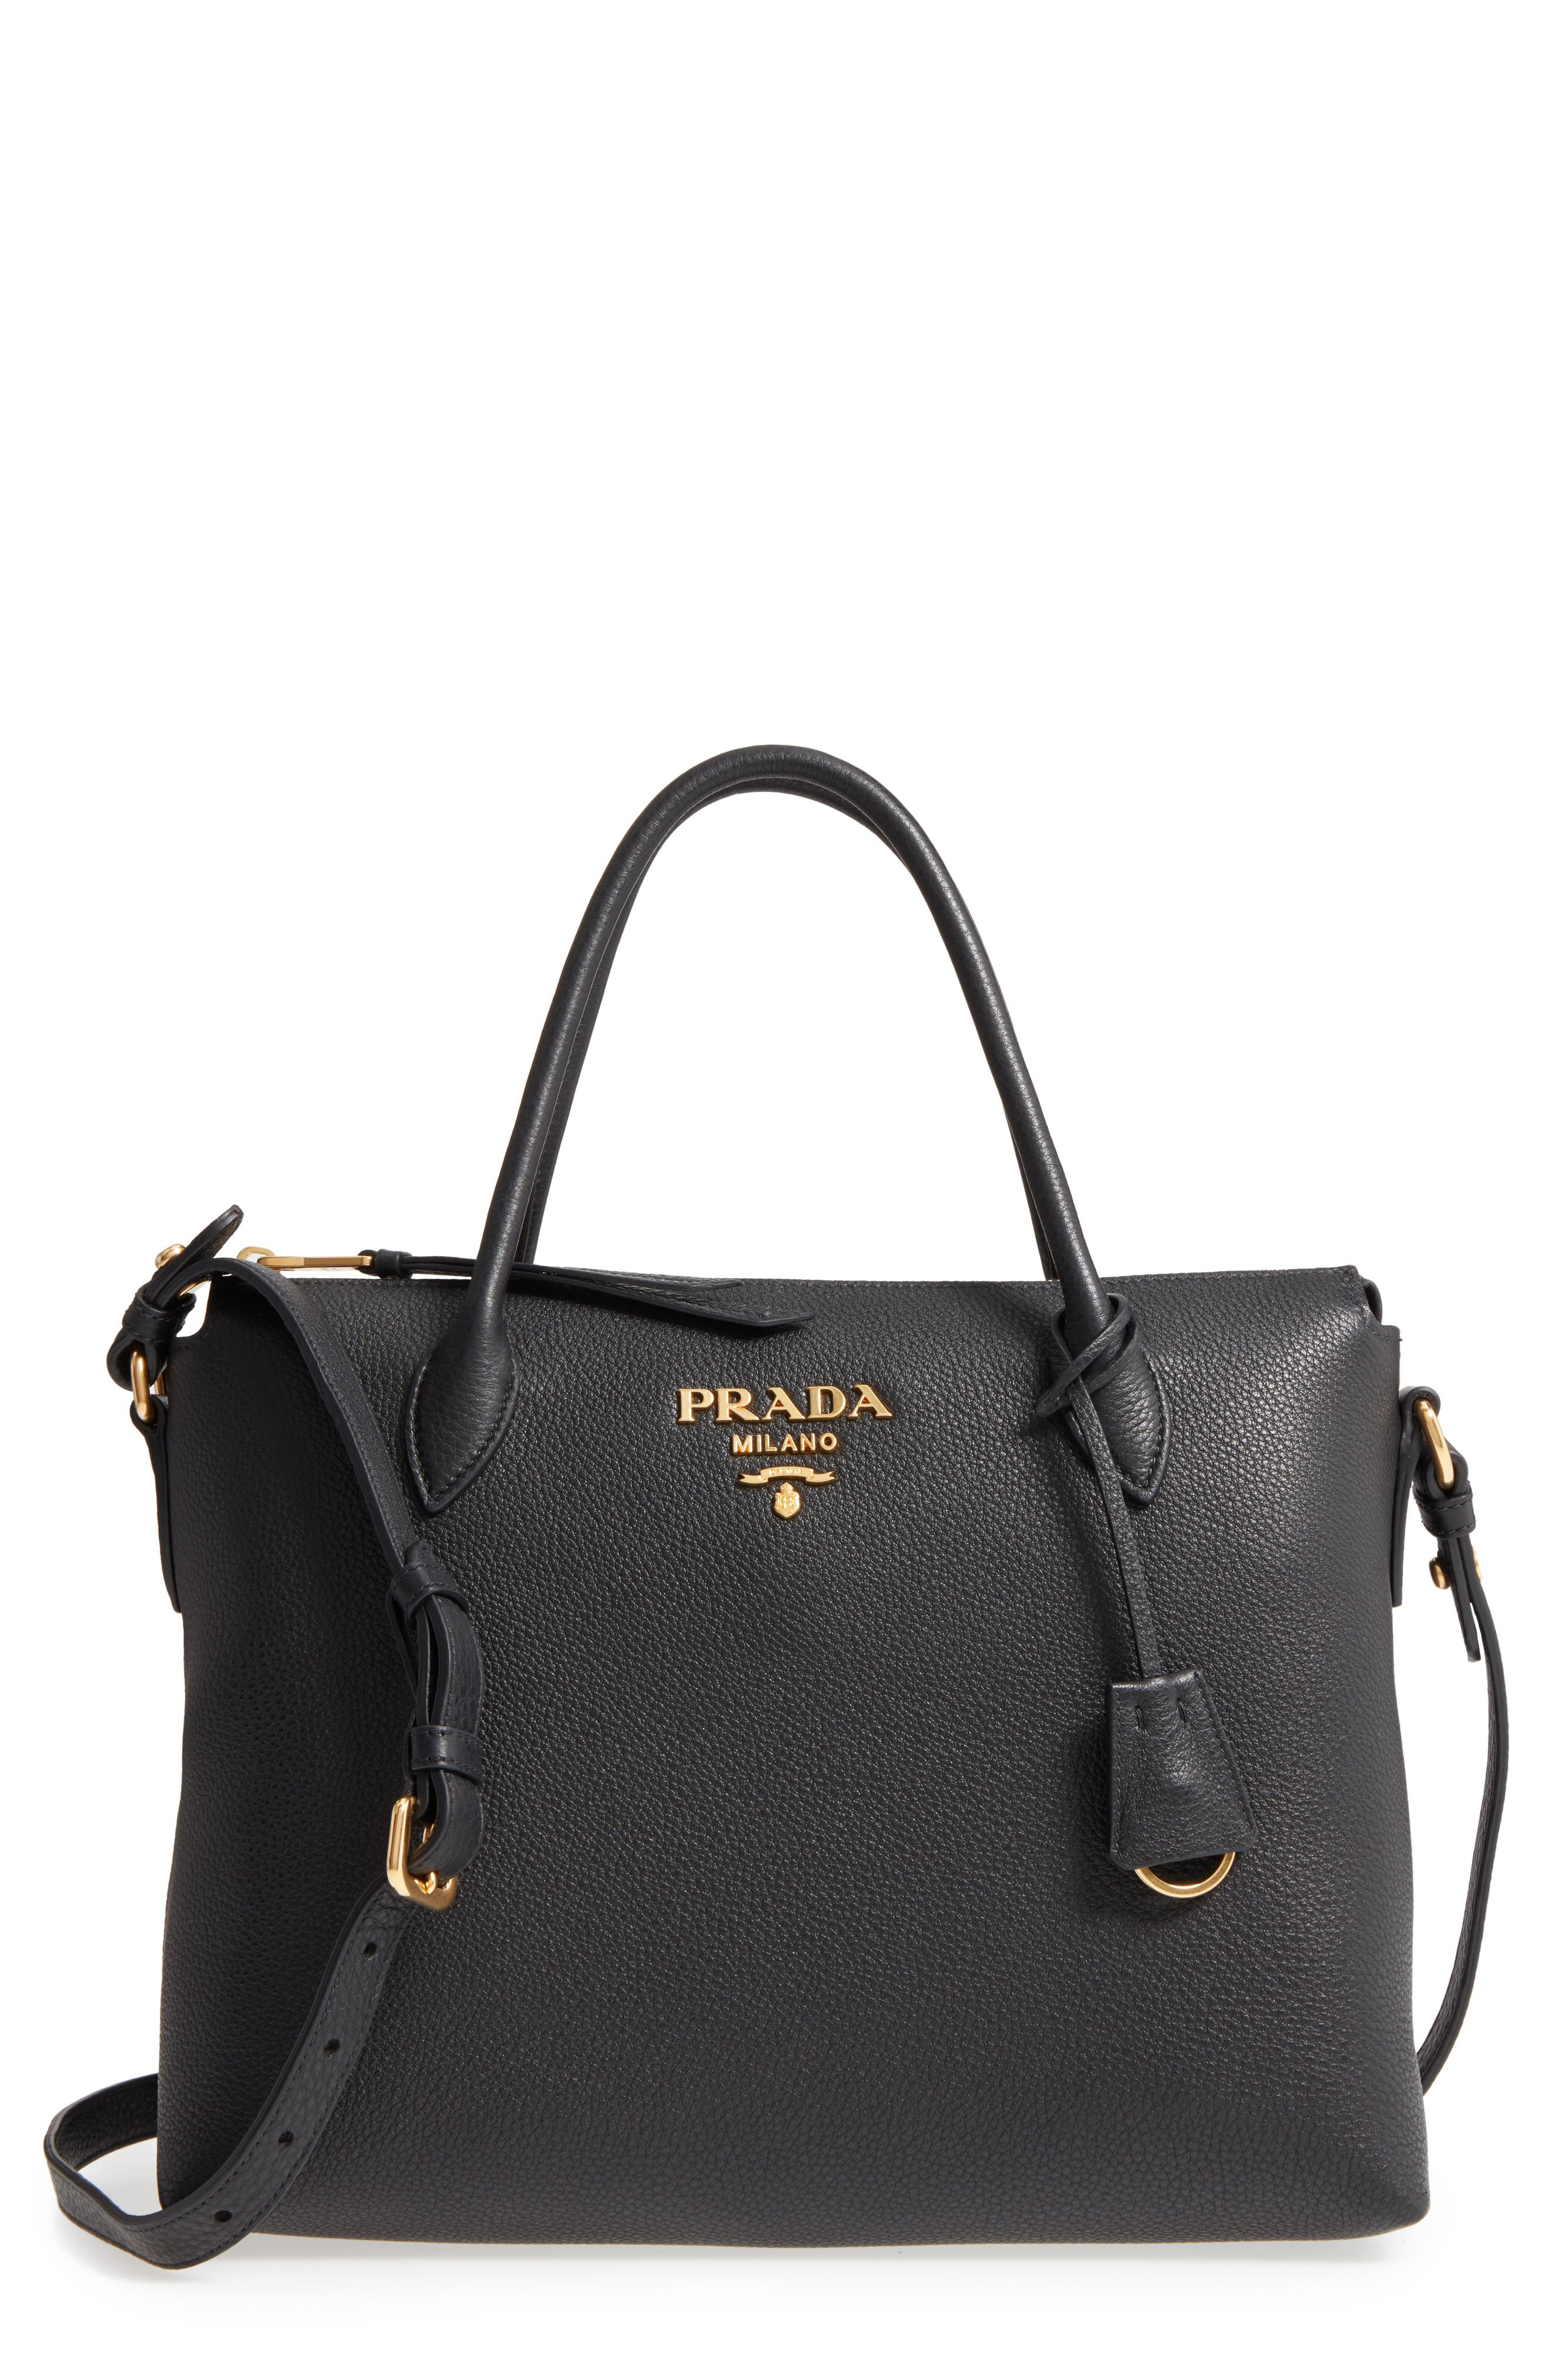 Prada Daino Leather Shoulder Bag